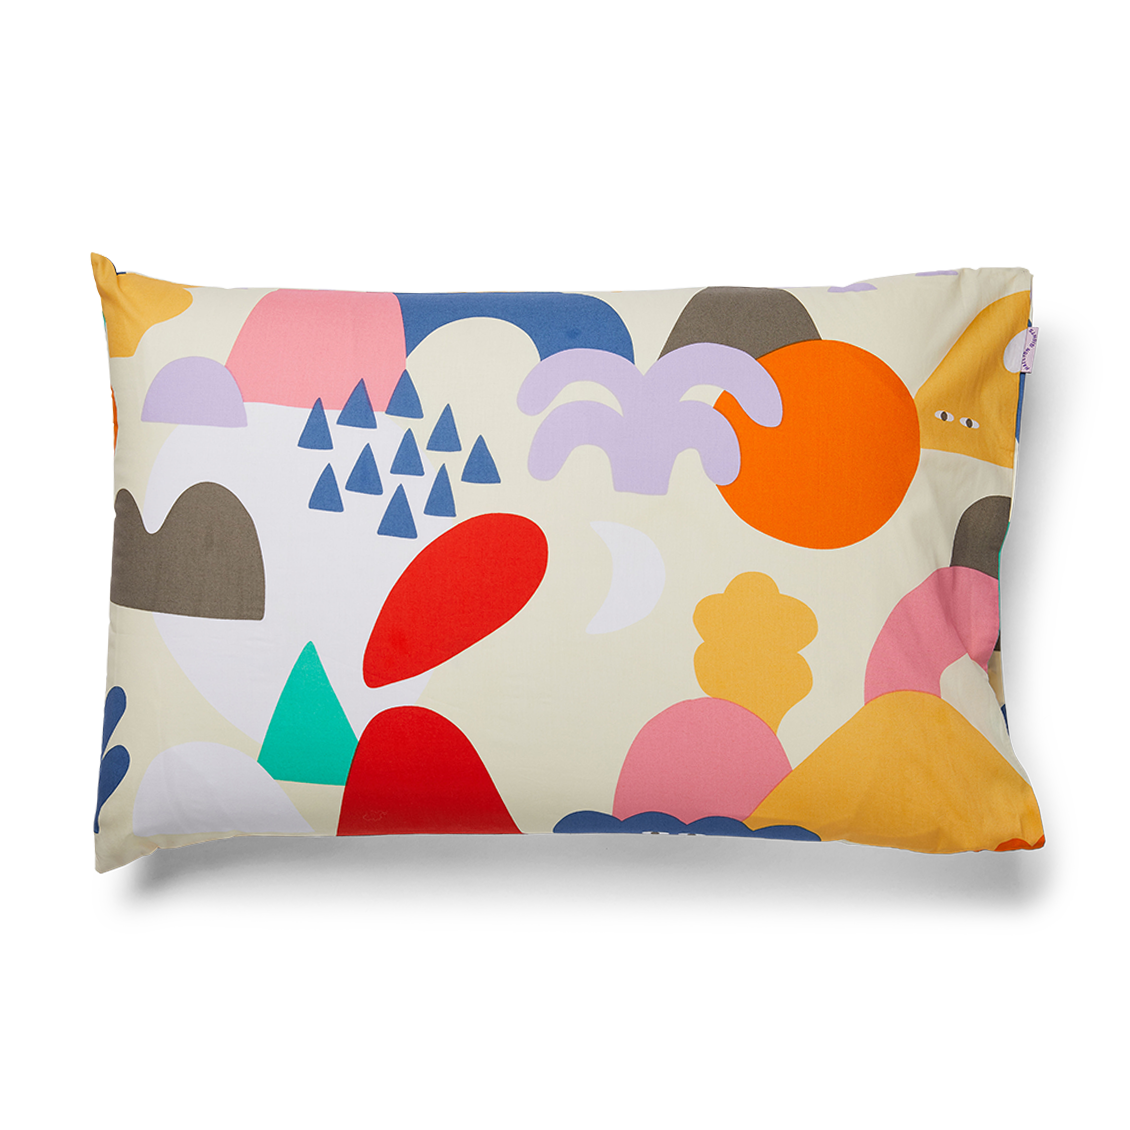 Wonderland Pillow Case - Available 25 Feb